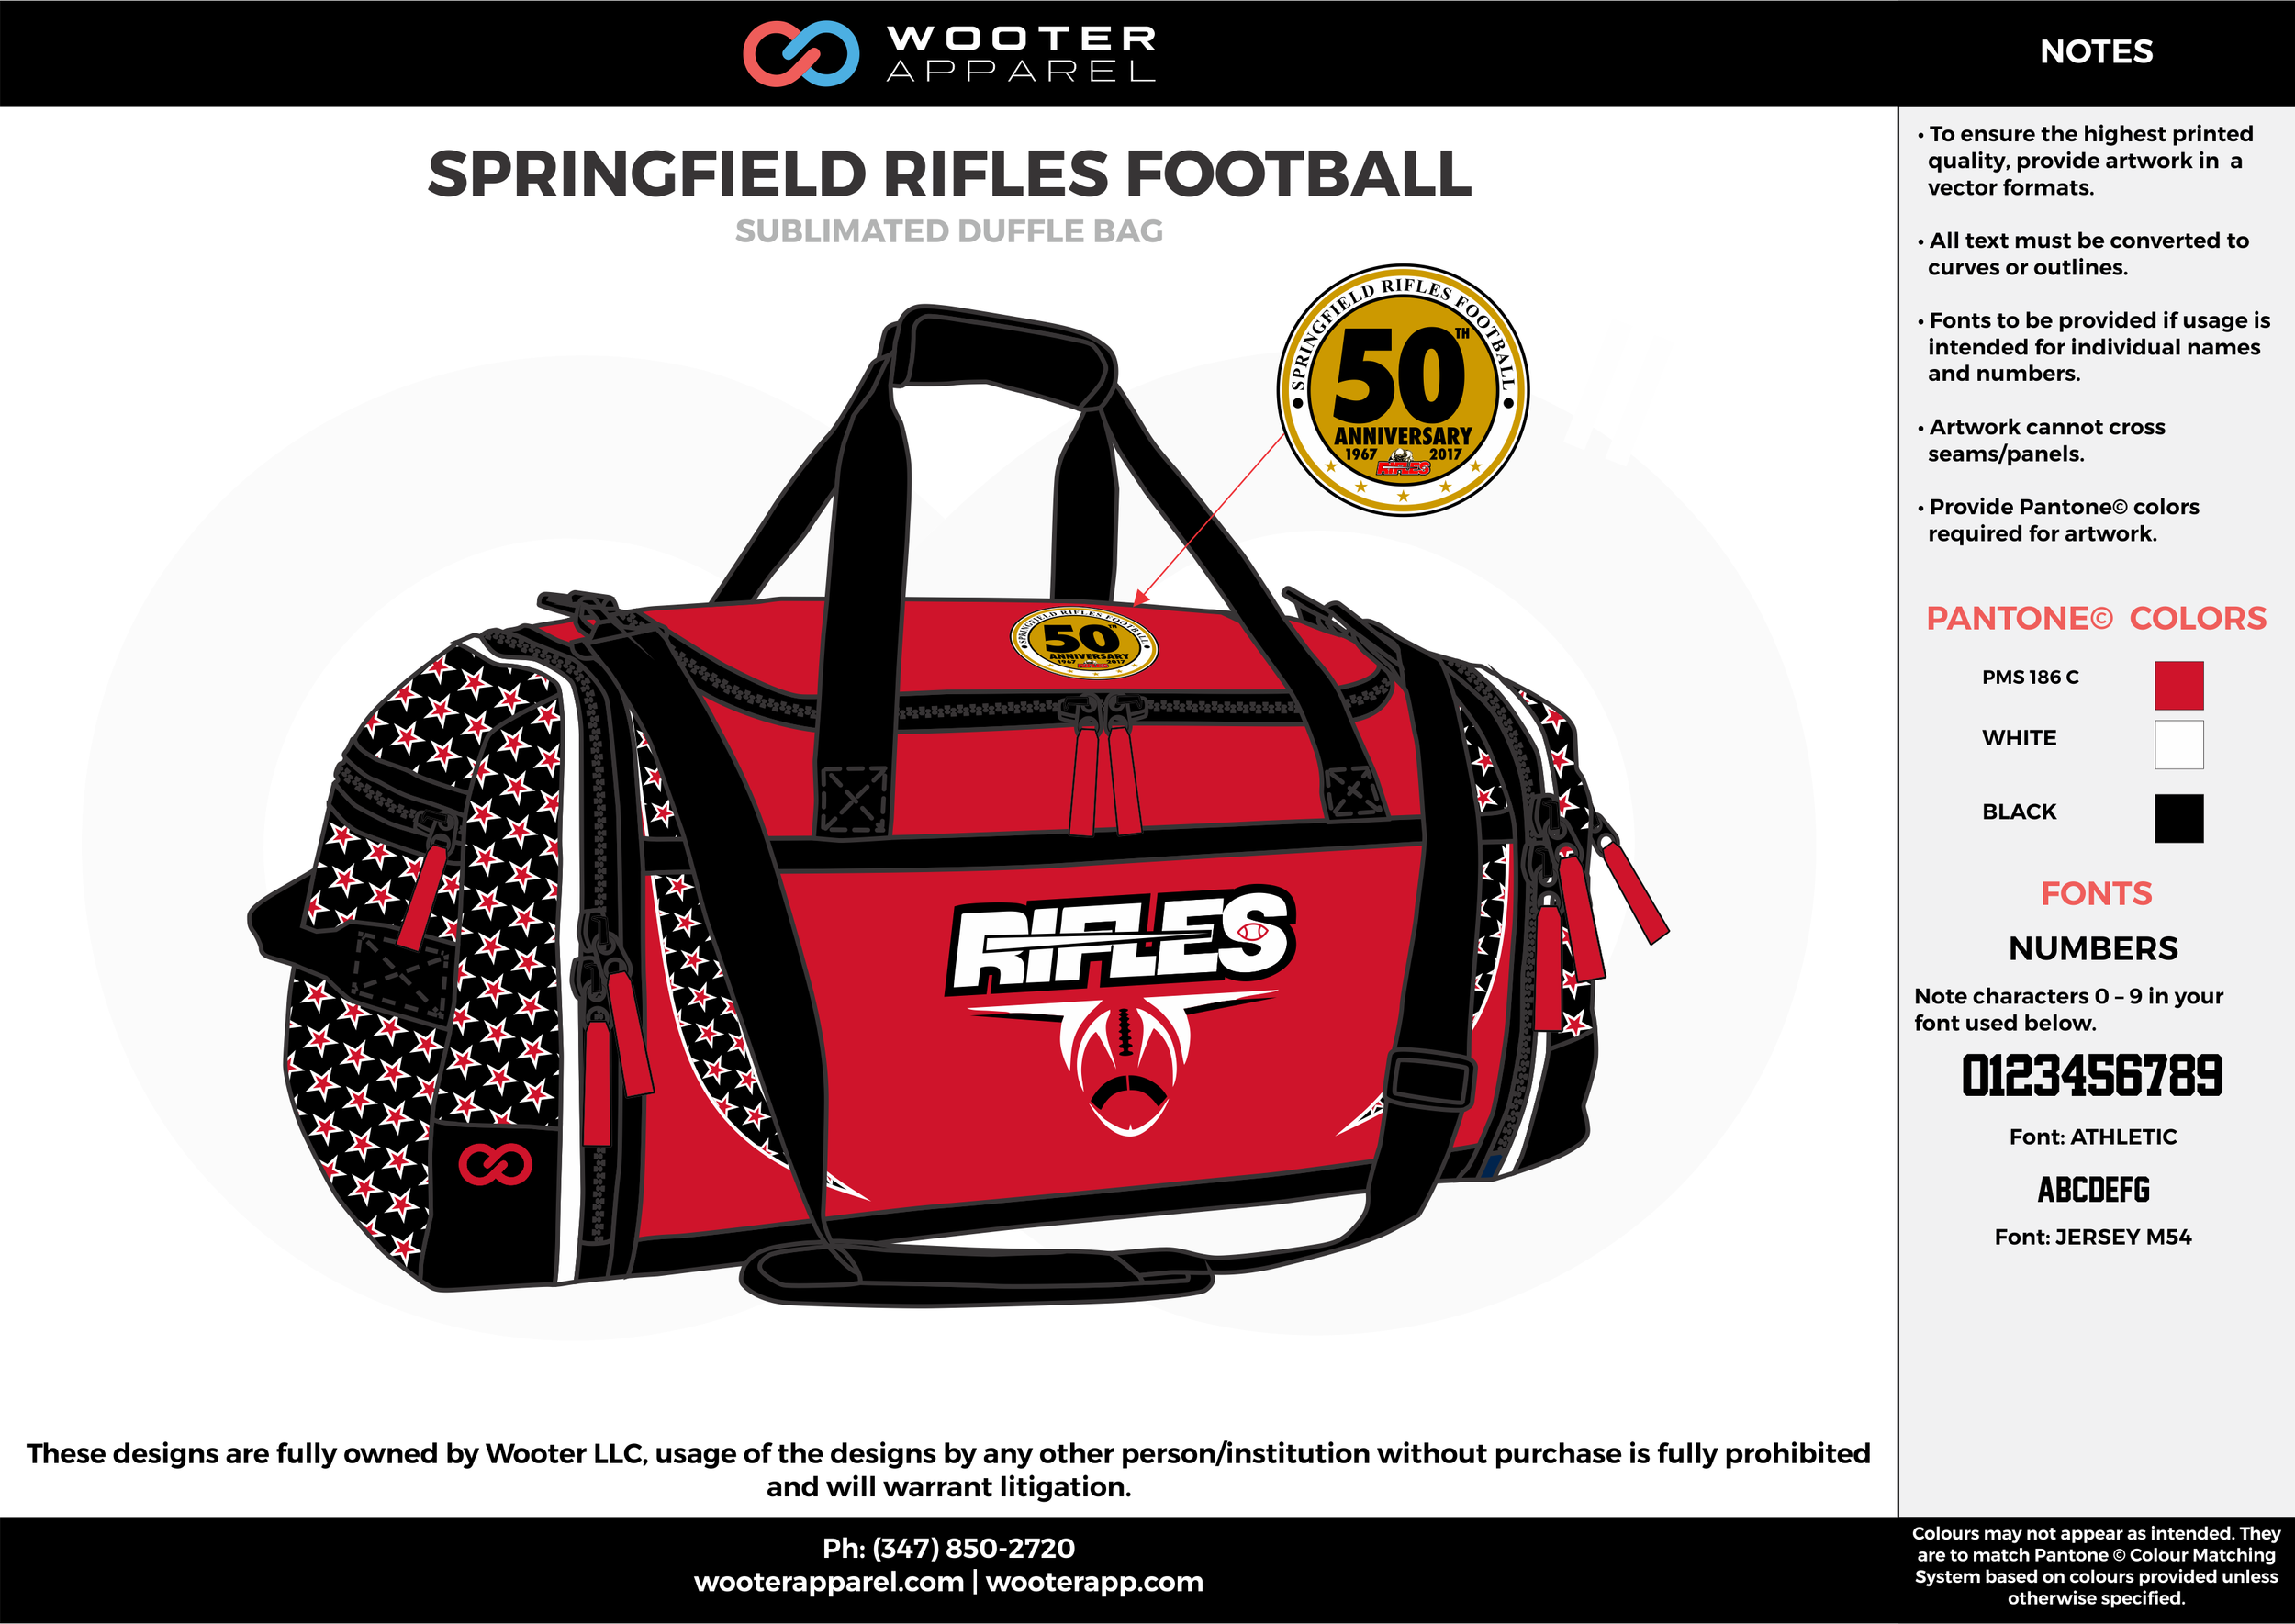 SPRINGFIELD RIFLES FOOTBALL Red White and Black Football Duffel Bag